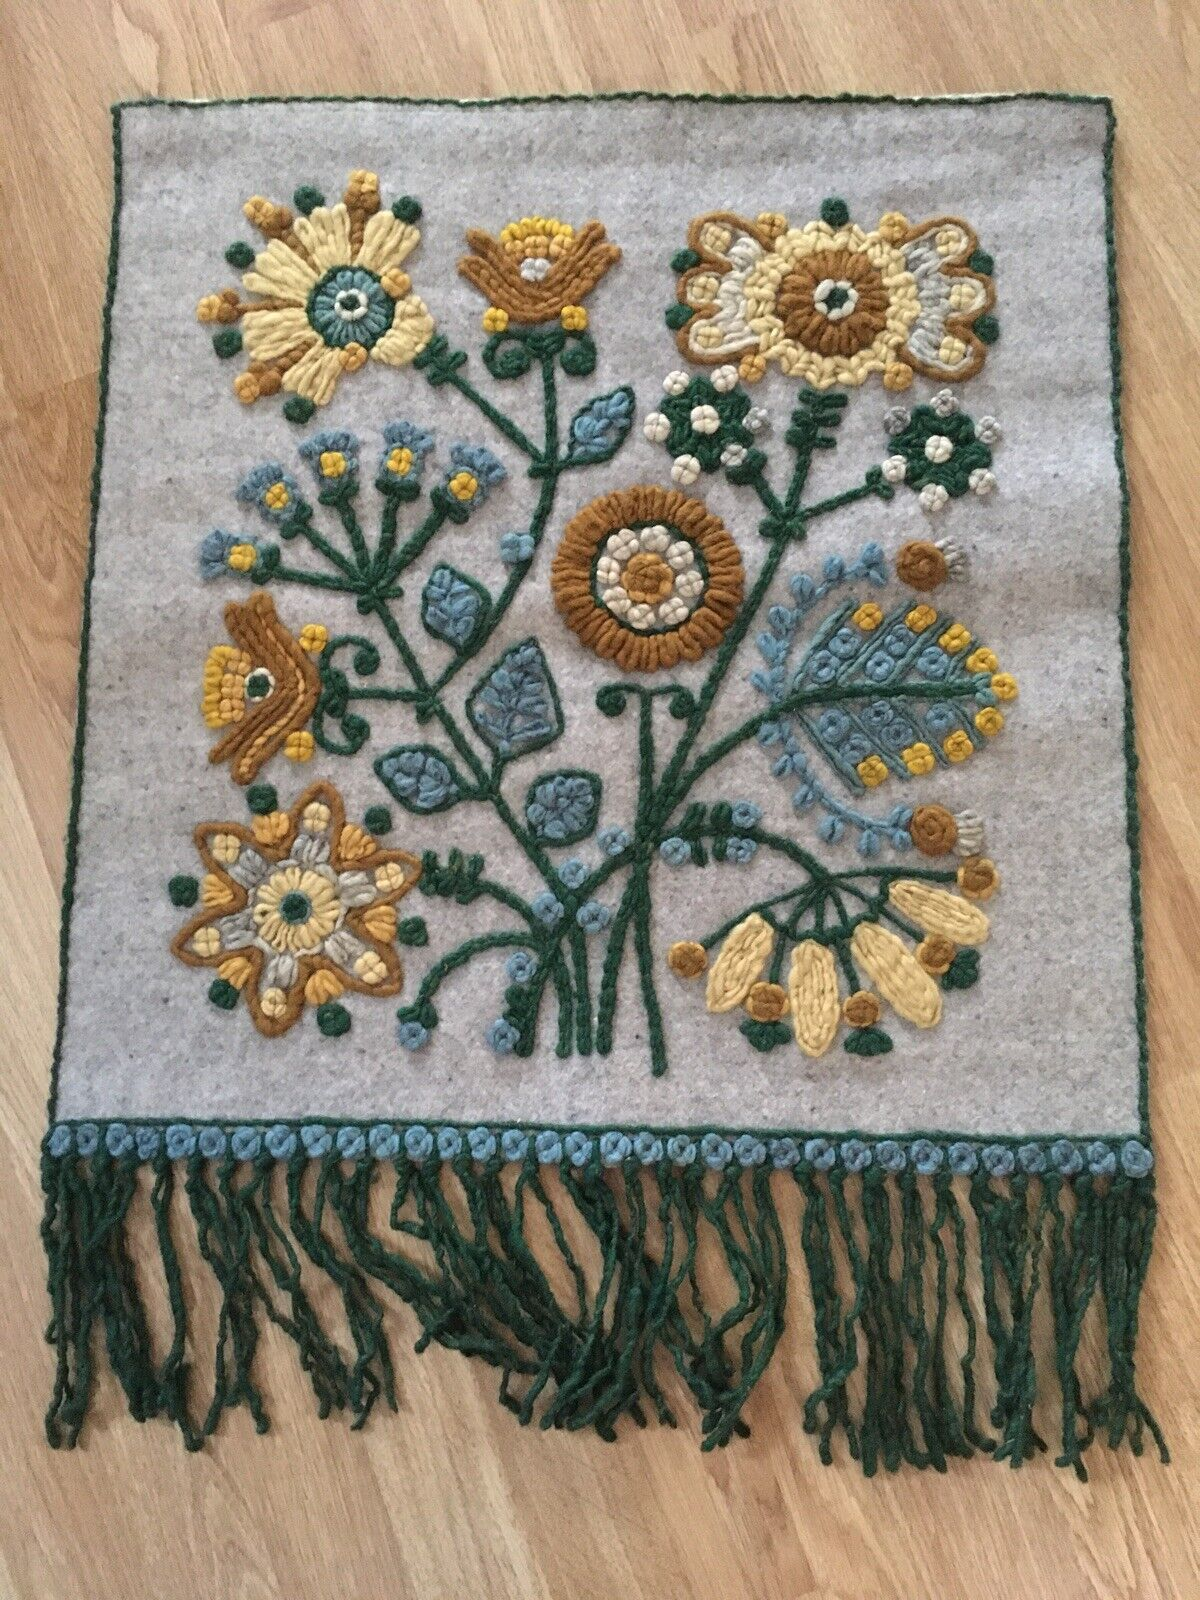 VINTAGE RETRO 70s MID CENTURY EMBROIDERED WALL HANGING FUNKY FLOWERS 75cm